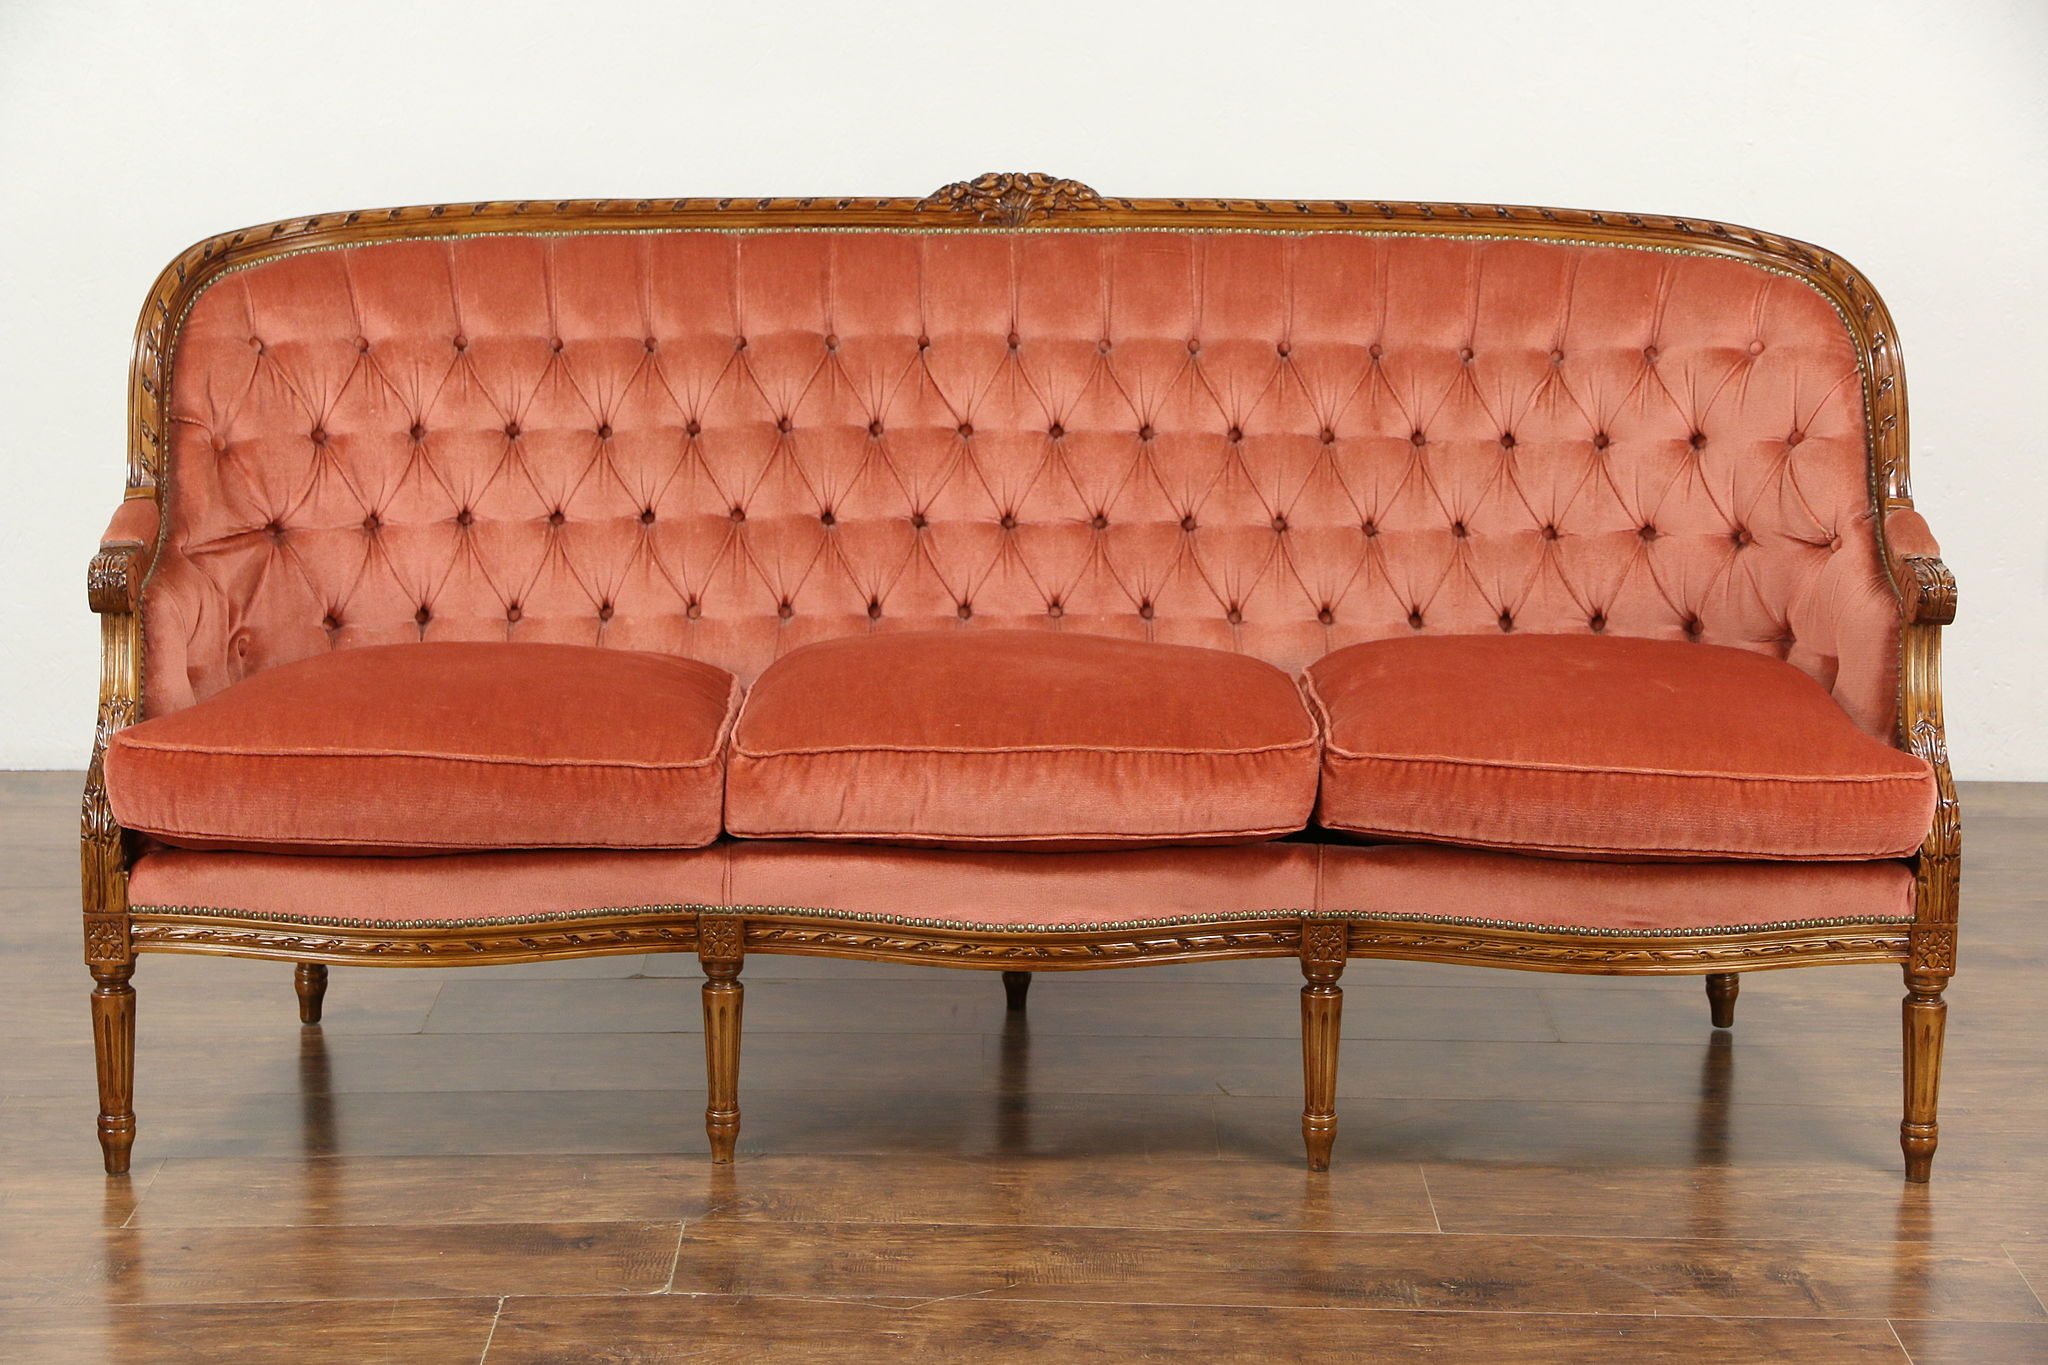 French Louis Xvi Style Vintage Carved Sofa Tufted Upholstery